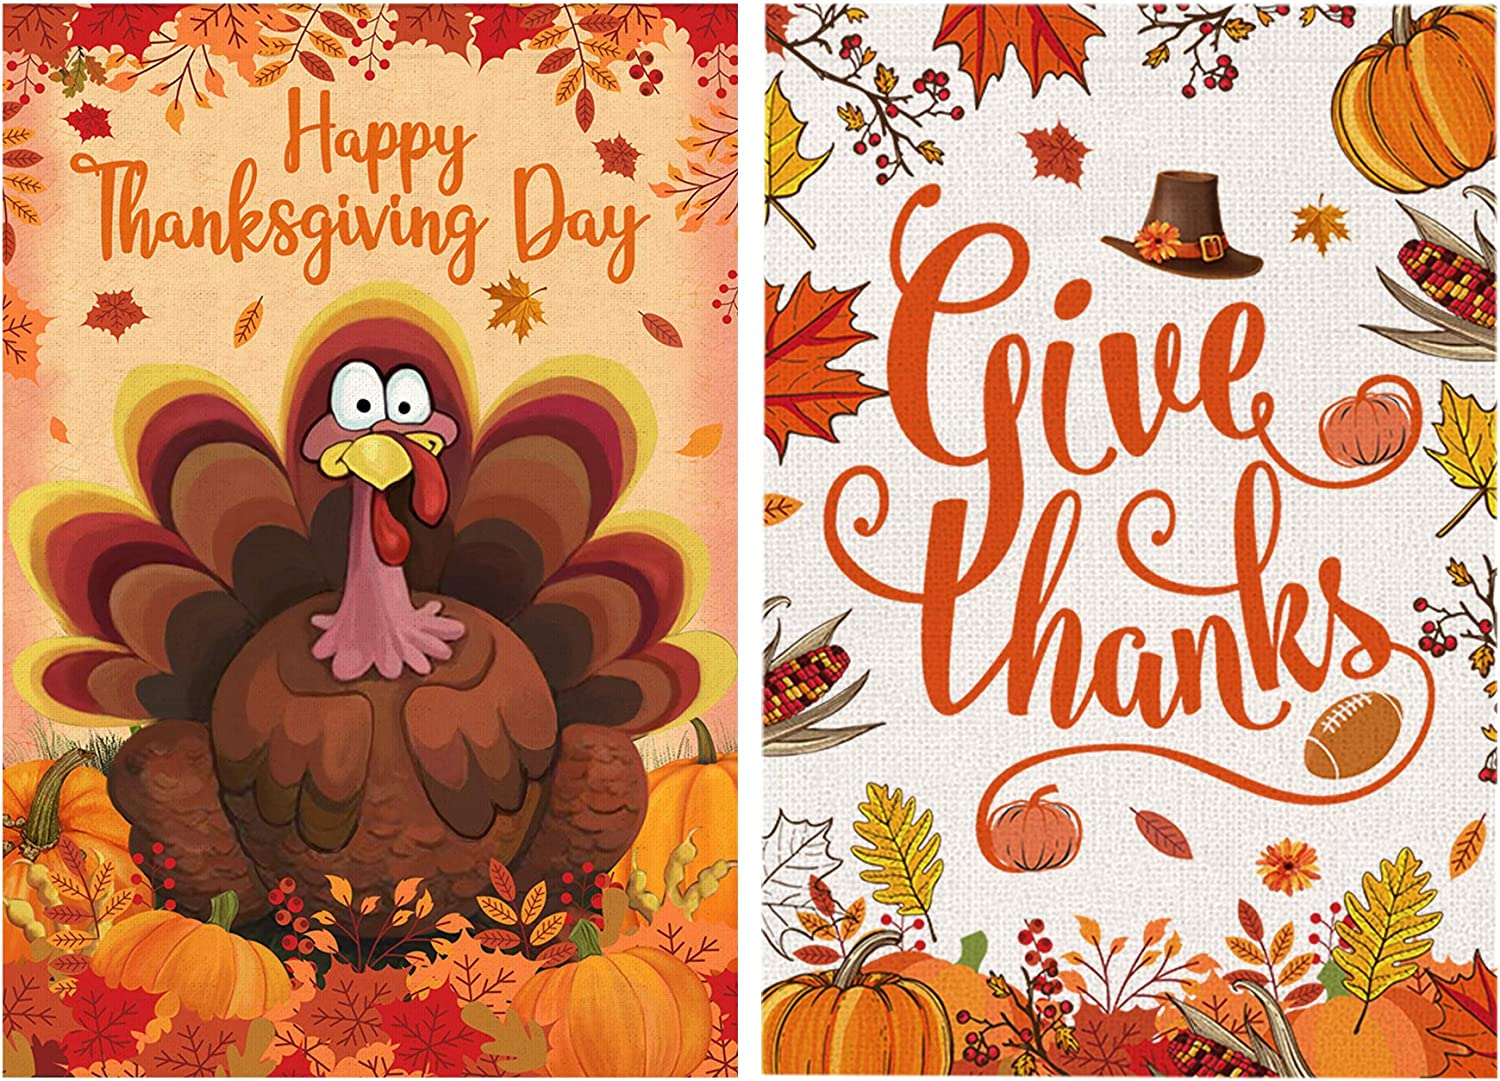 Bonsai Tree 2 Pack Thanksgiving Garden Flag, Double Sided Give Thanks Burlap House Flags 12x18 Prime, Funny Turkey Fall Pumpkins Leaves Welcome Yard Signs Banners Farmhouse Home Outdoor Decorations